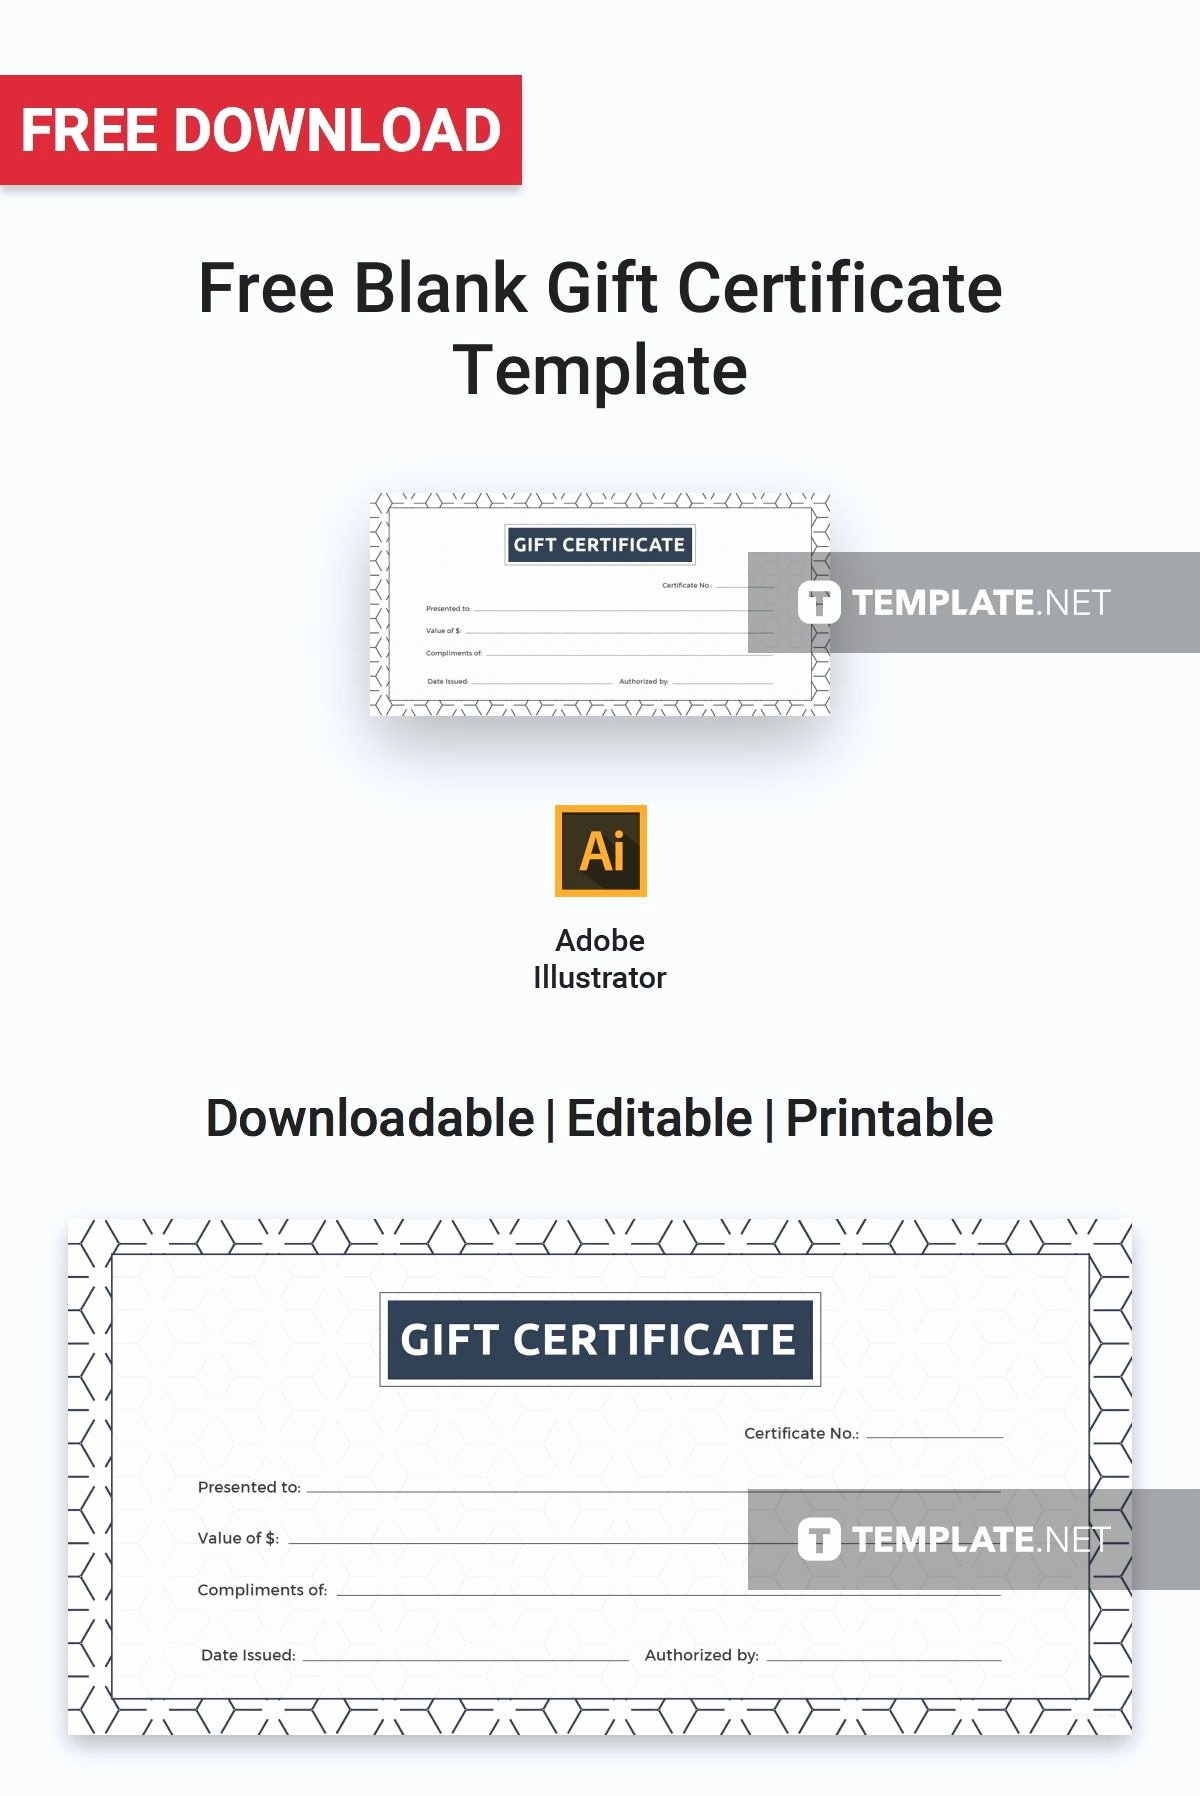 Fitness Gift Certificate Template New Free Blank Gift Certificate Certificate Templates & Designs 2019